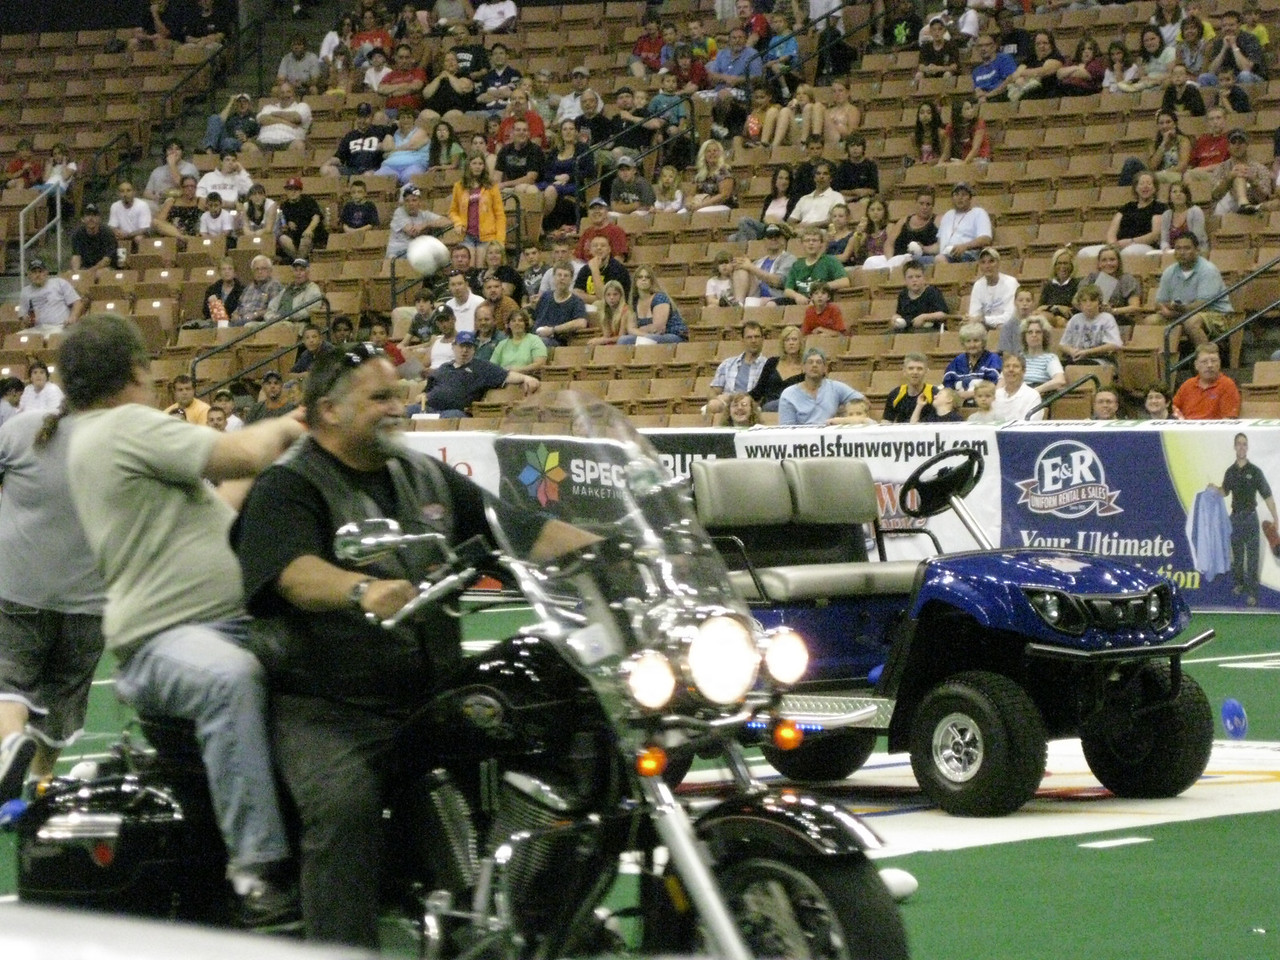 A promotion contest involving motorcycle drive-by football tossing skills.